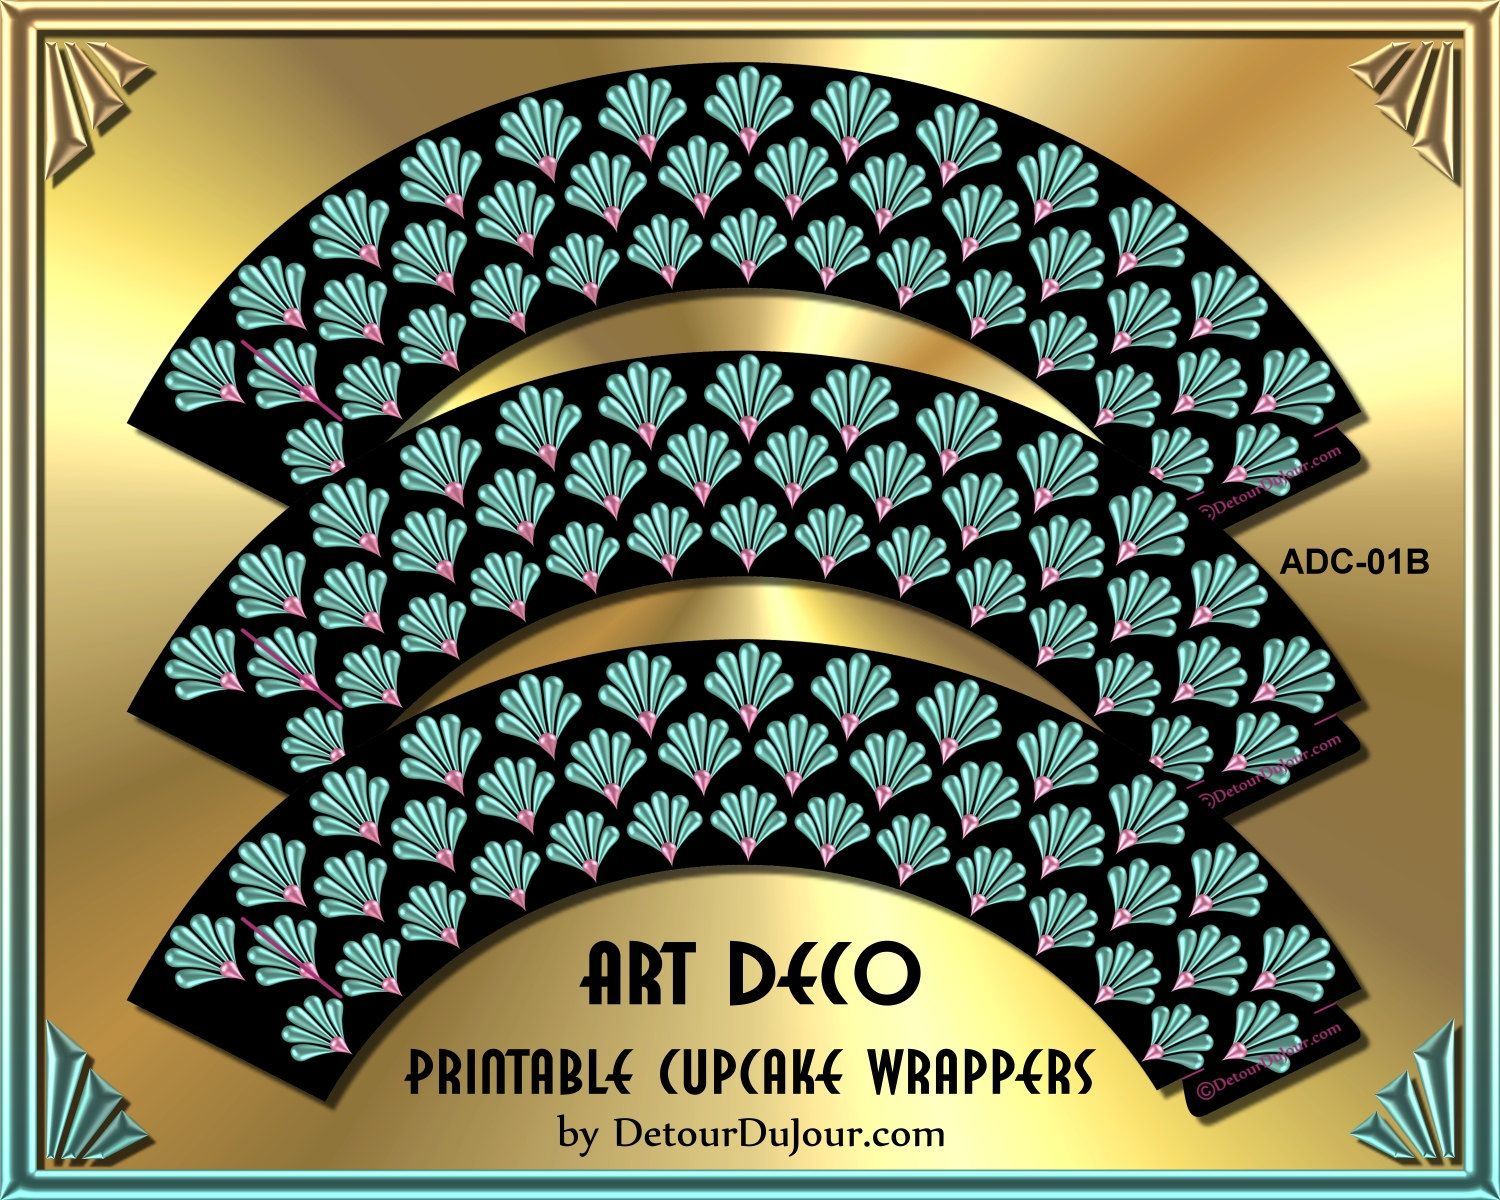 Art Deco Cupcake Wrappers ADC-01B, Art Deco - Wedding Cupcakes, Bridal Showers, Birthdays, Office Parties, etc. by DetourDuJour on Etsy